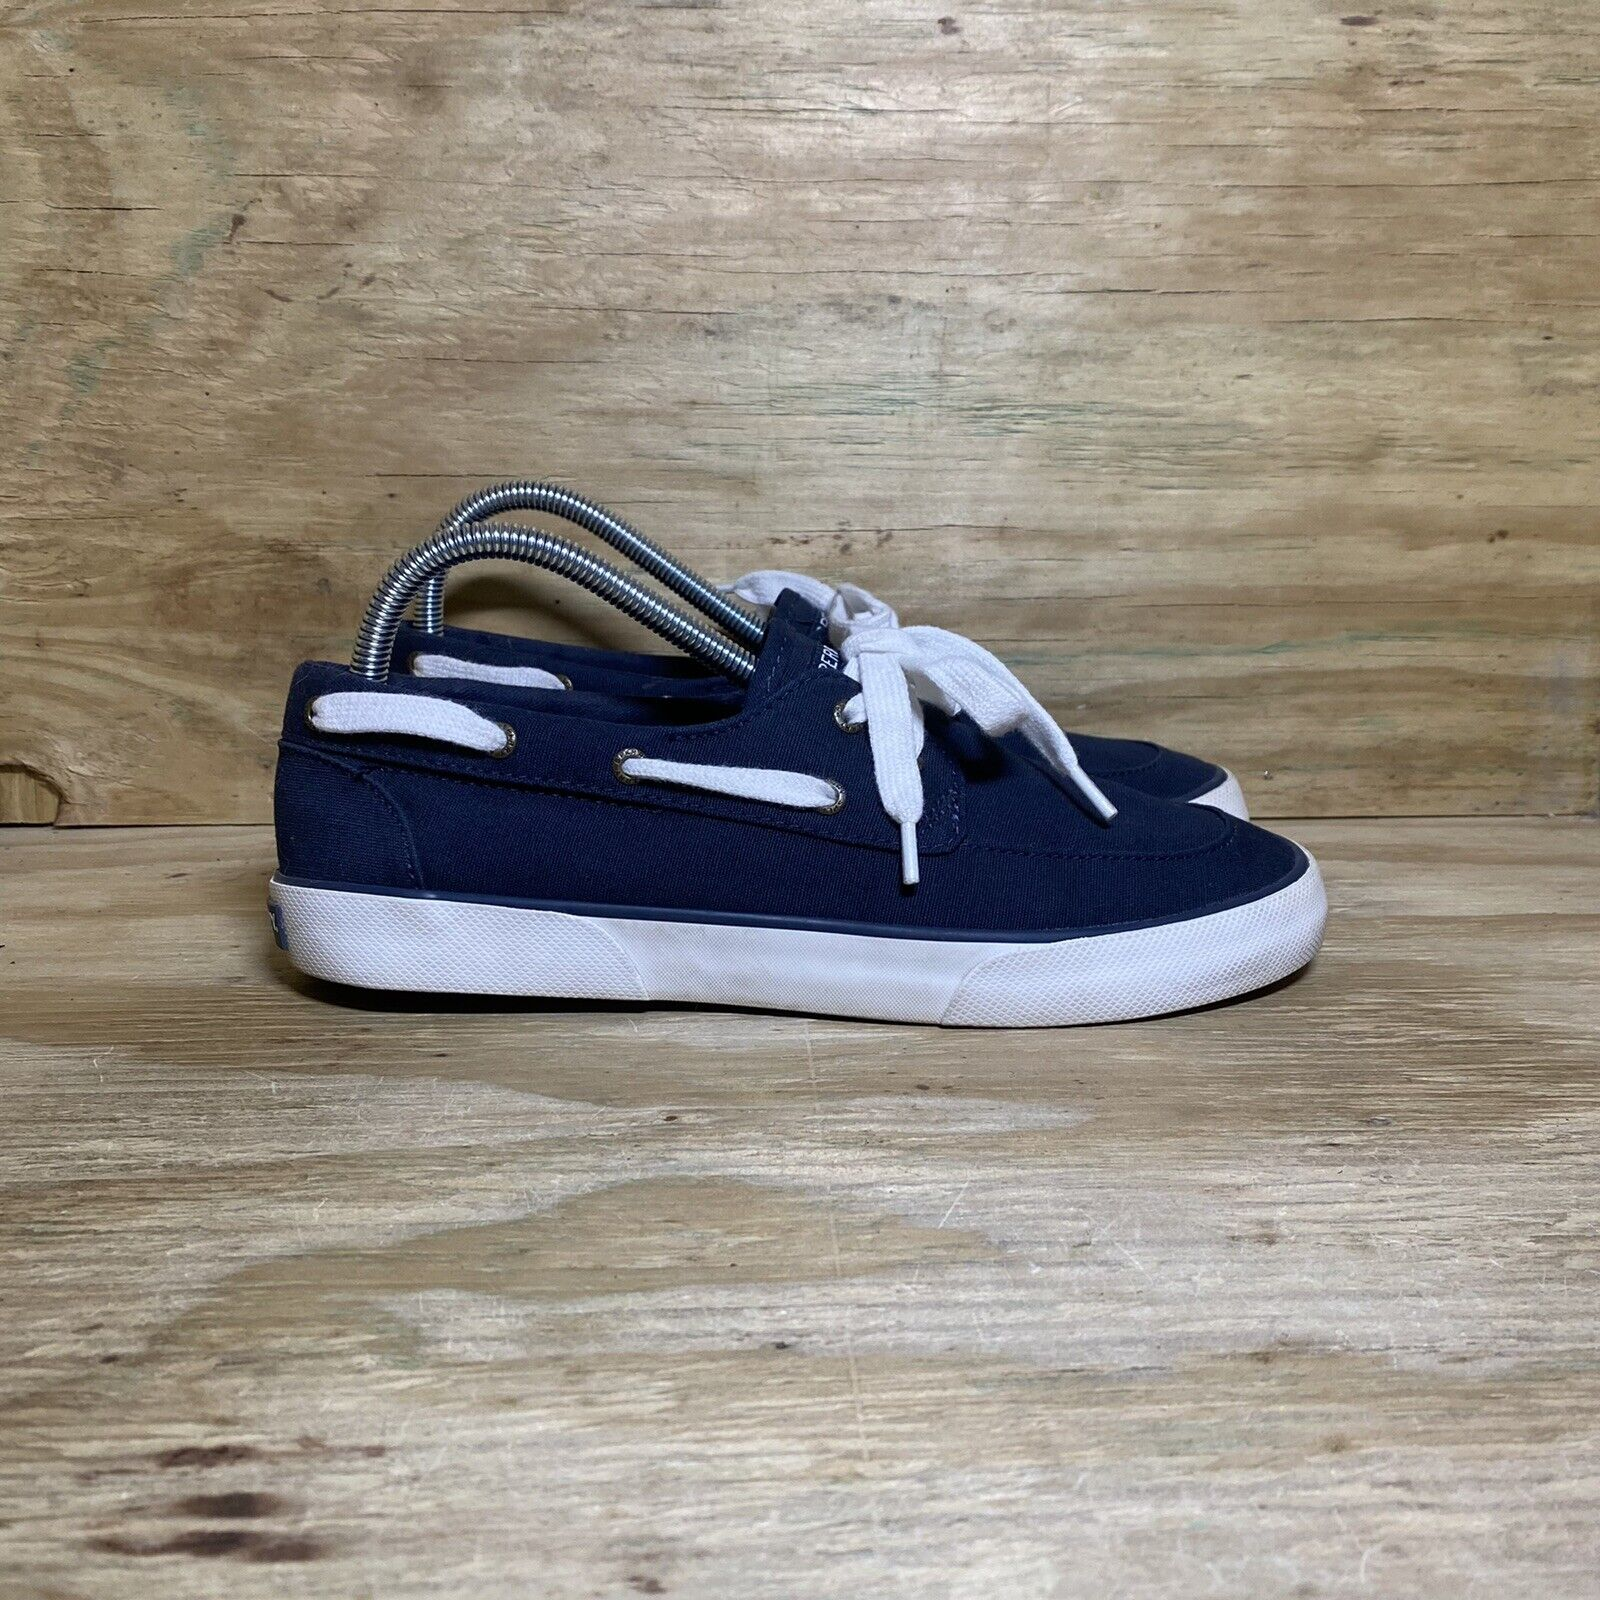 Sperry Pier Boat Shoes (STS83187), Women's size 9, Blue / White